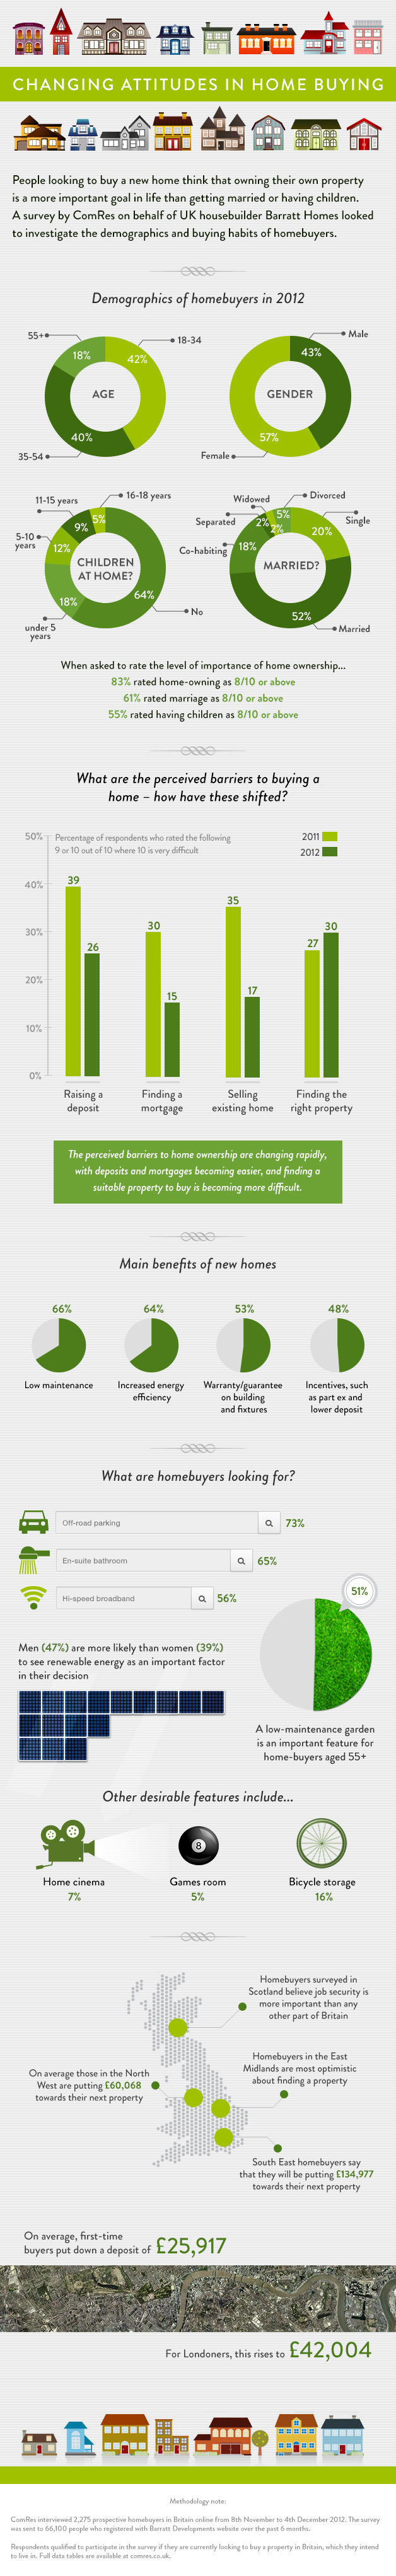 Barratt Homes - Changing Attitudes In Home Buying Infographic